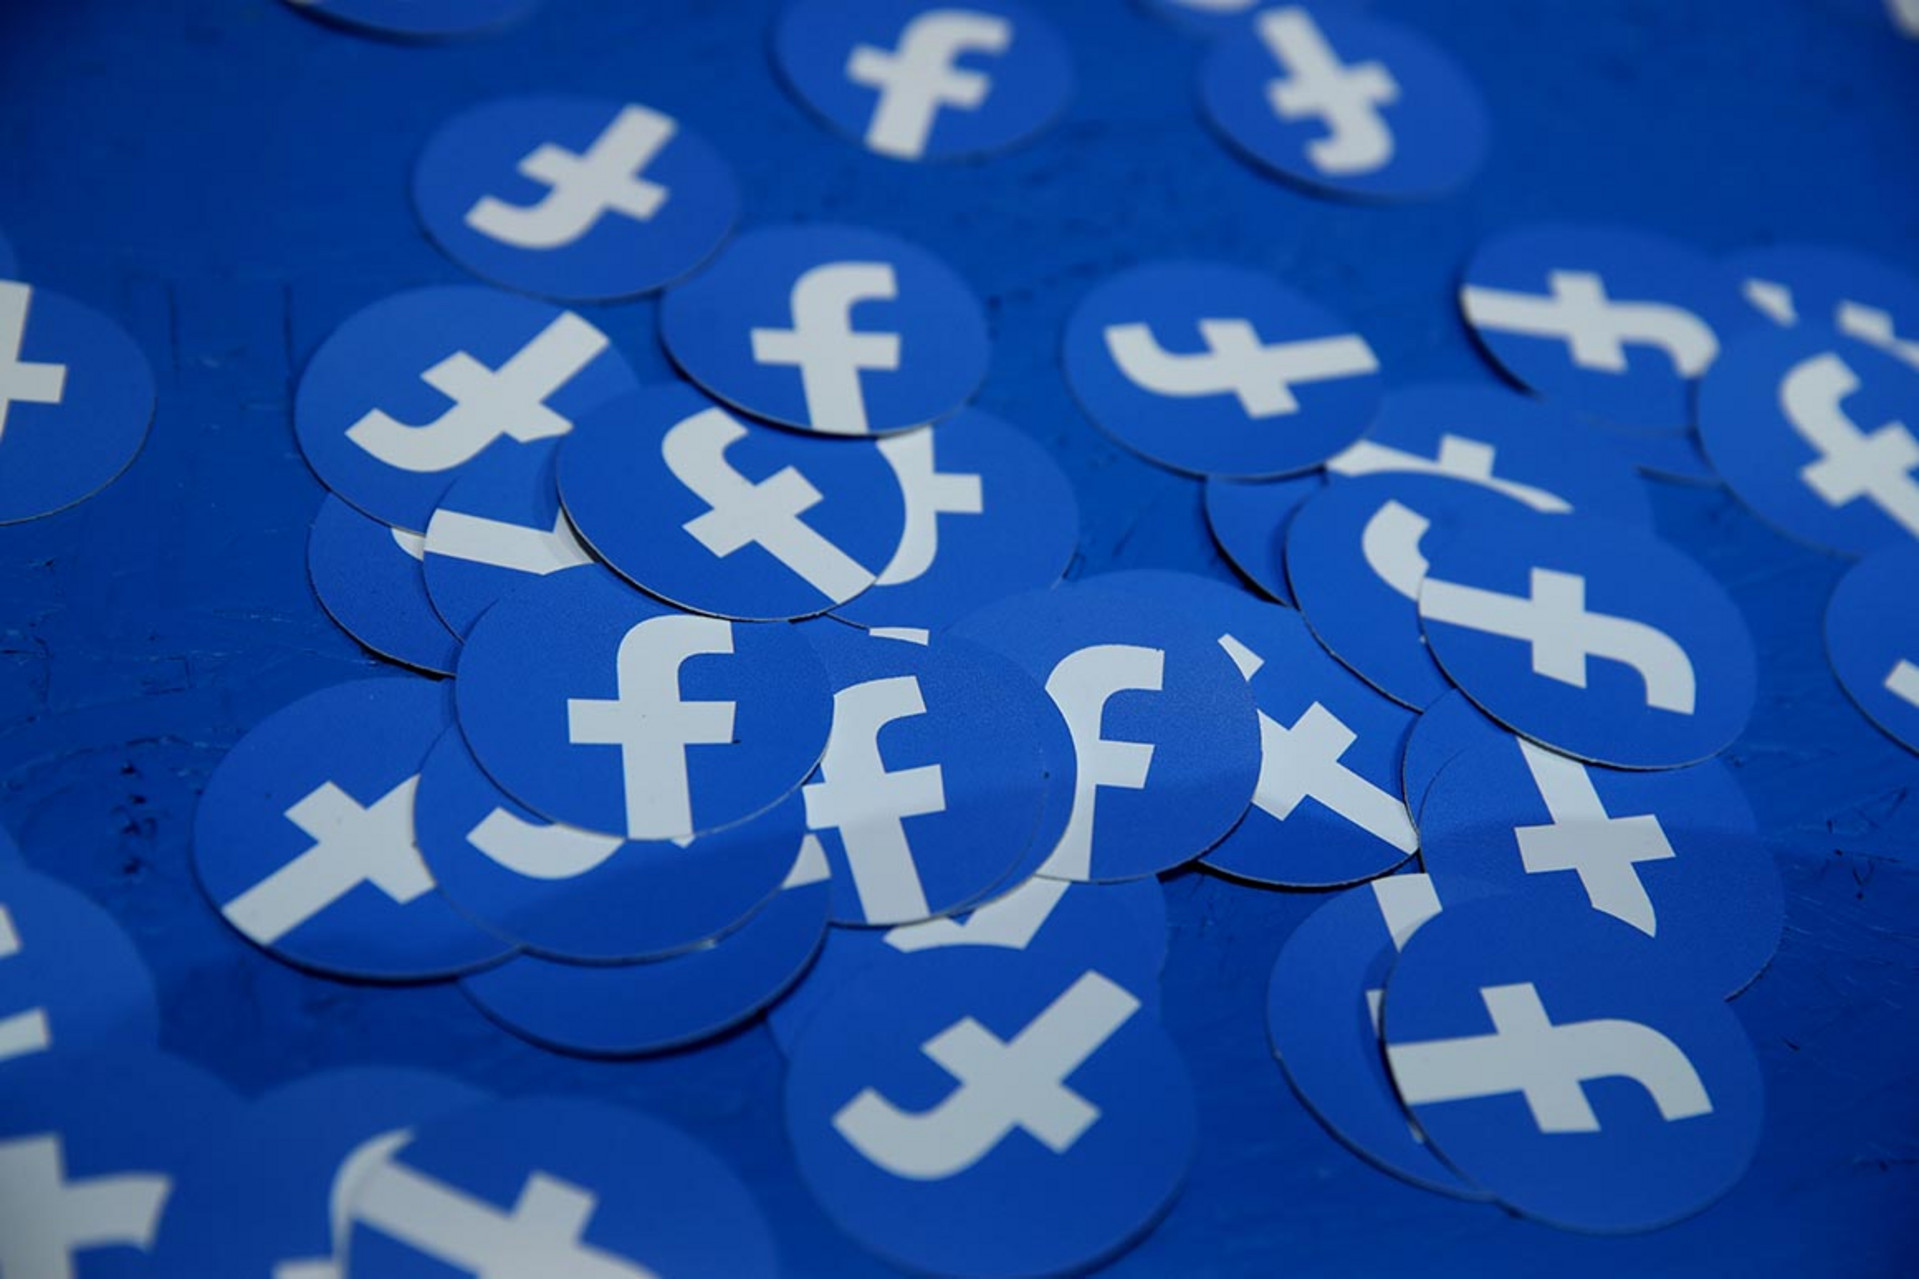 State AGs will appeal loss in Facebook case